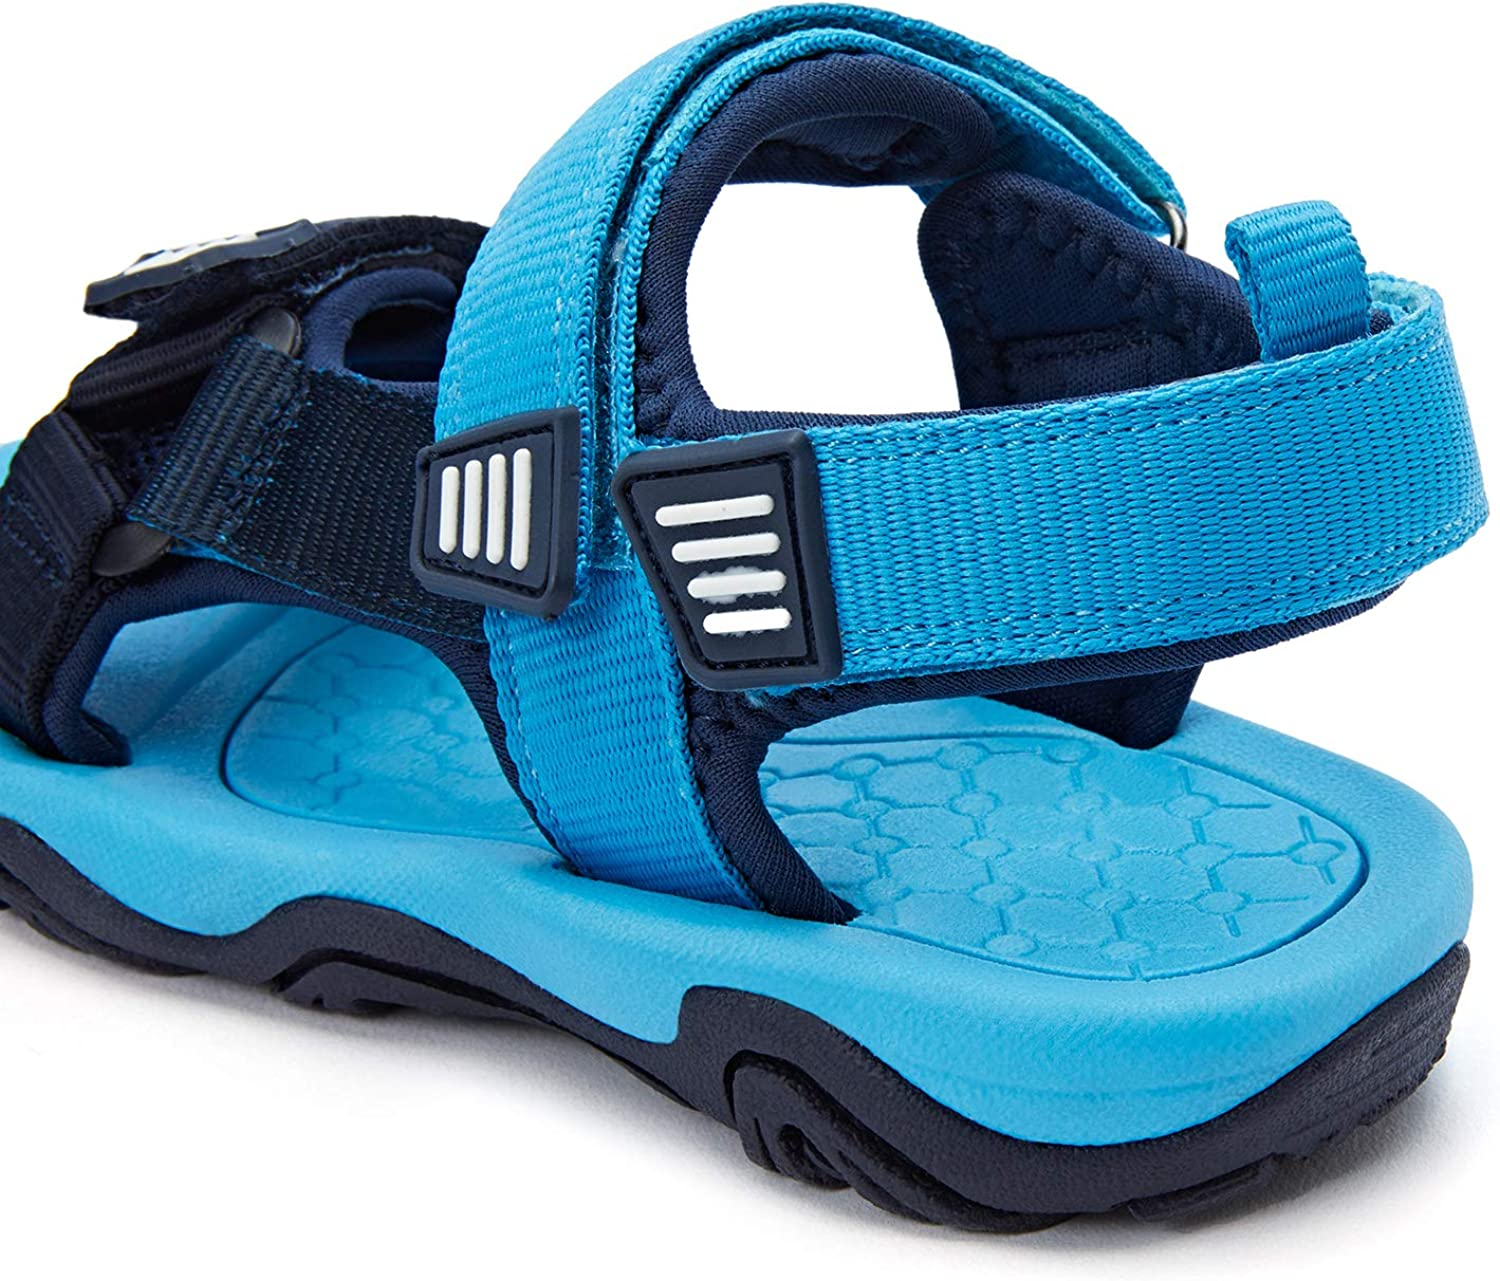 Weestep Toddler Little Kid Boys Girls Adjustable Strap Sandal